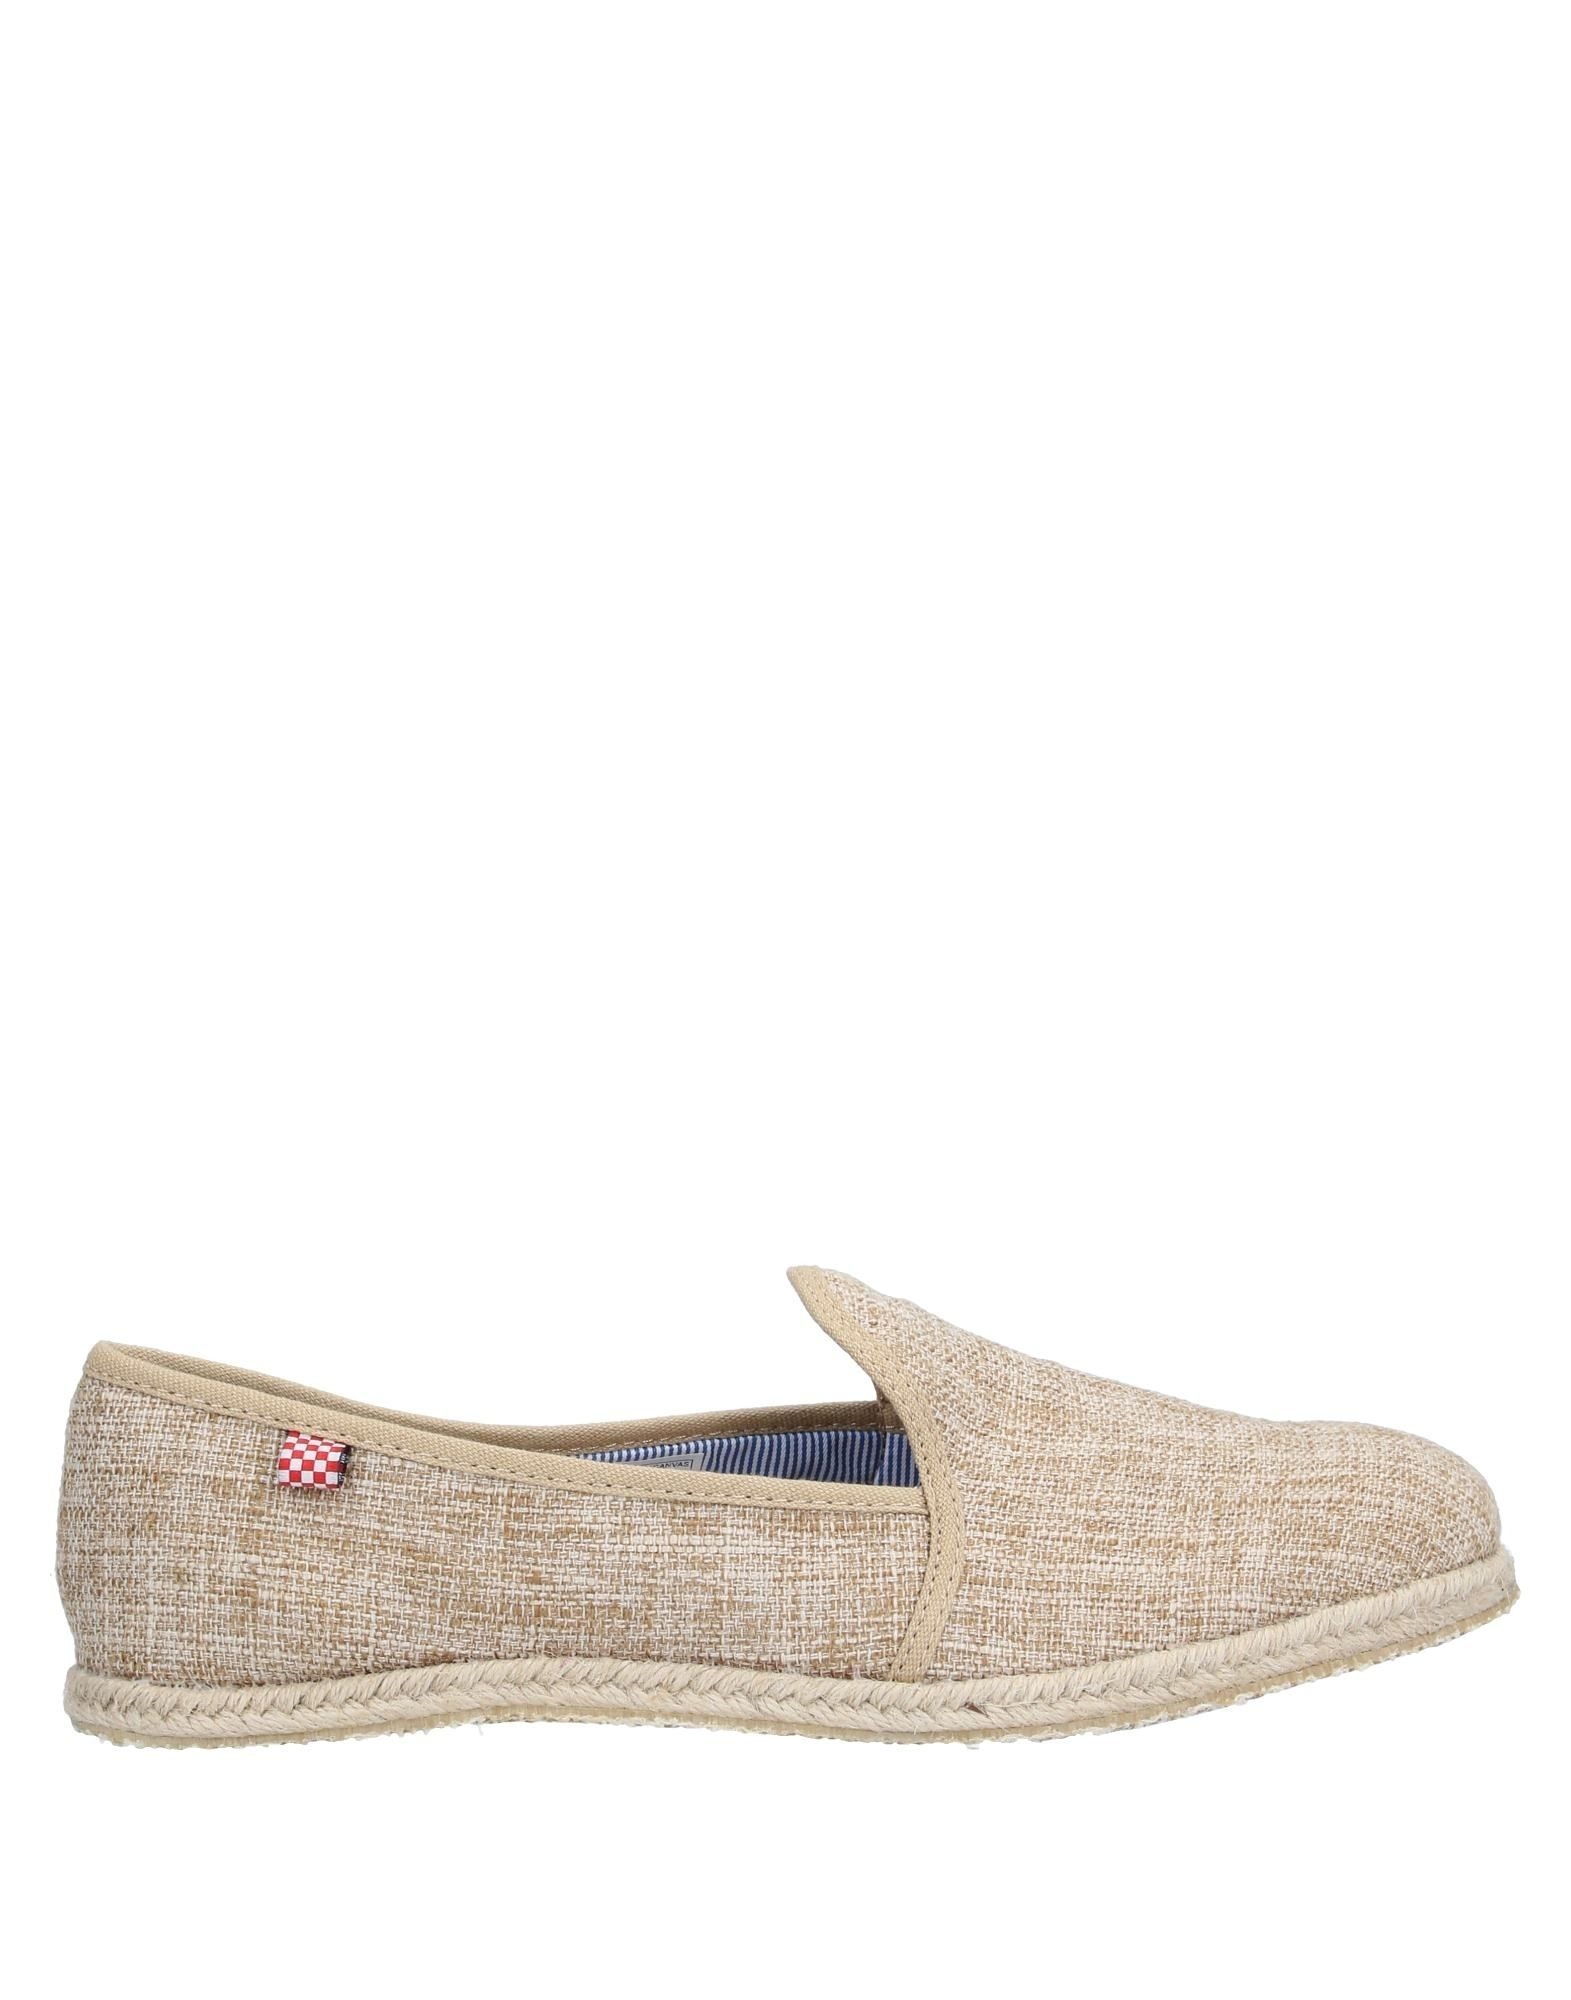 MC2 SAINT BARTH Espadrilles. canvas, contrasting applications, solid color, round toeline, fabric inner, rubber cleated sole, flat, large sized. Textile fibers